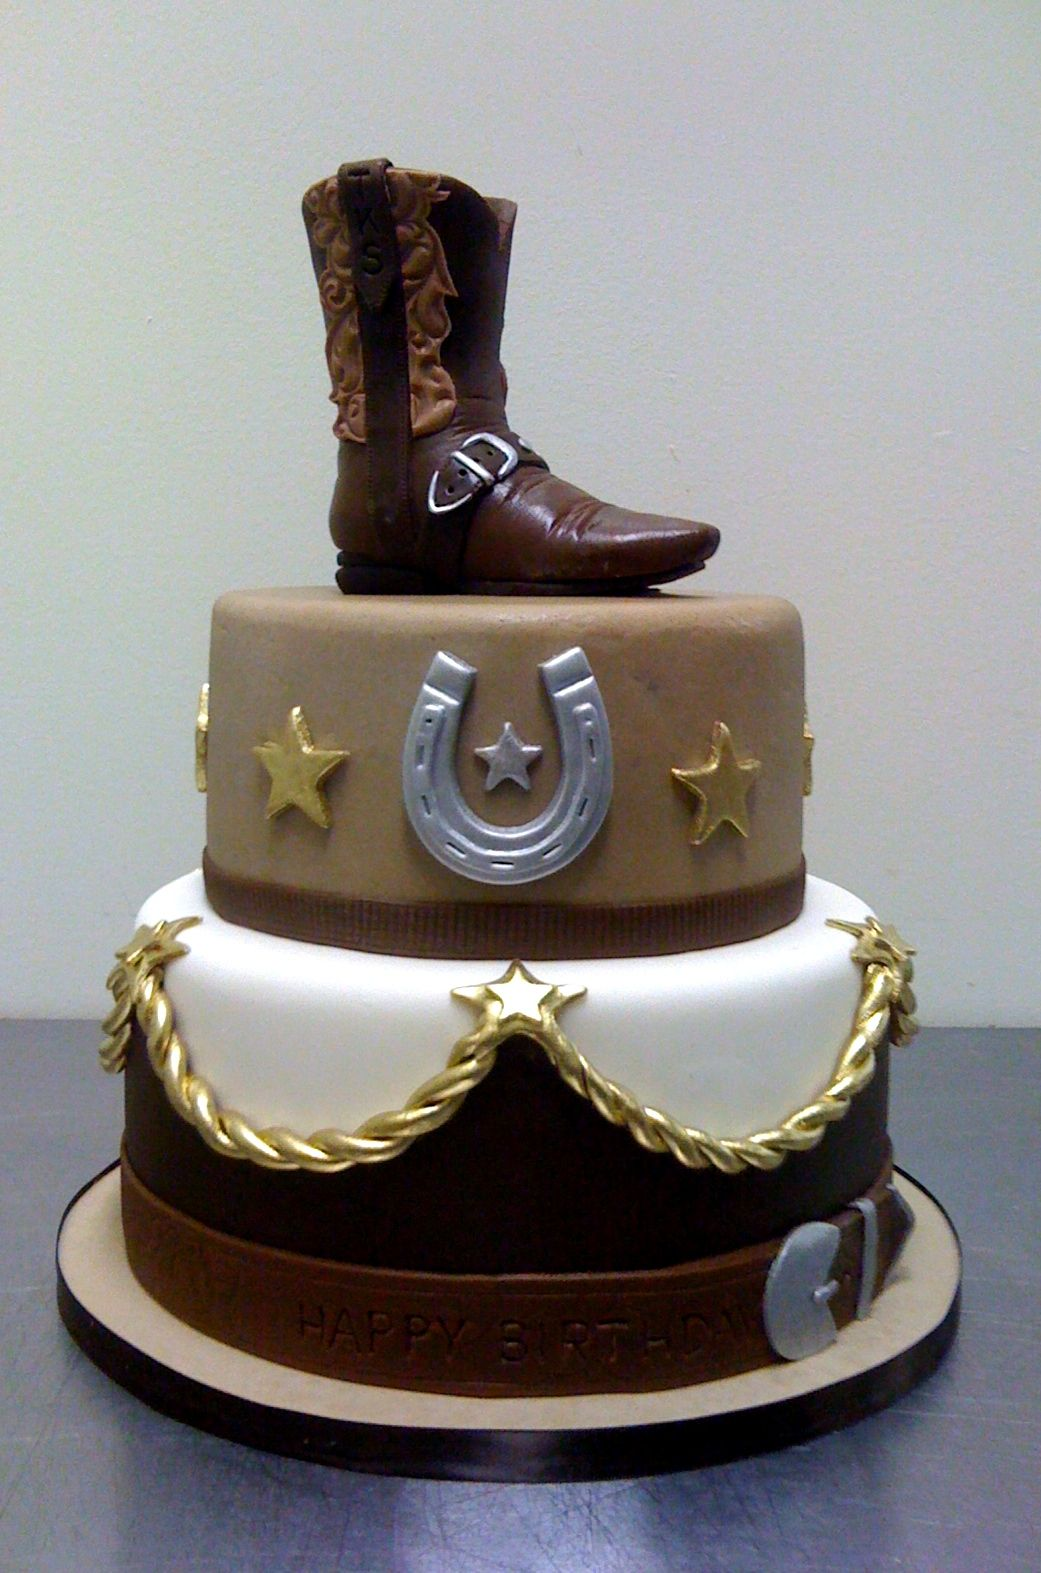 Marvelous Amy Beck Cake Design Chicago Il Cowboy Boot Birthday Cake Funny Birthday Cards Online Inifodamsfinfo